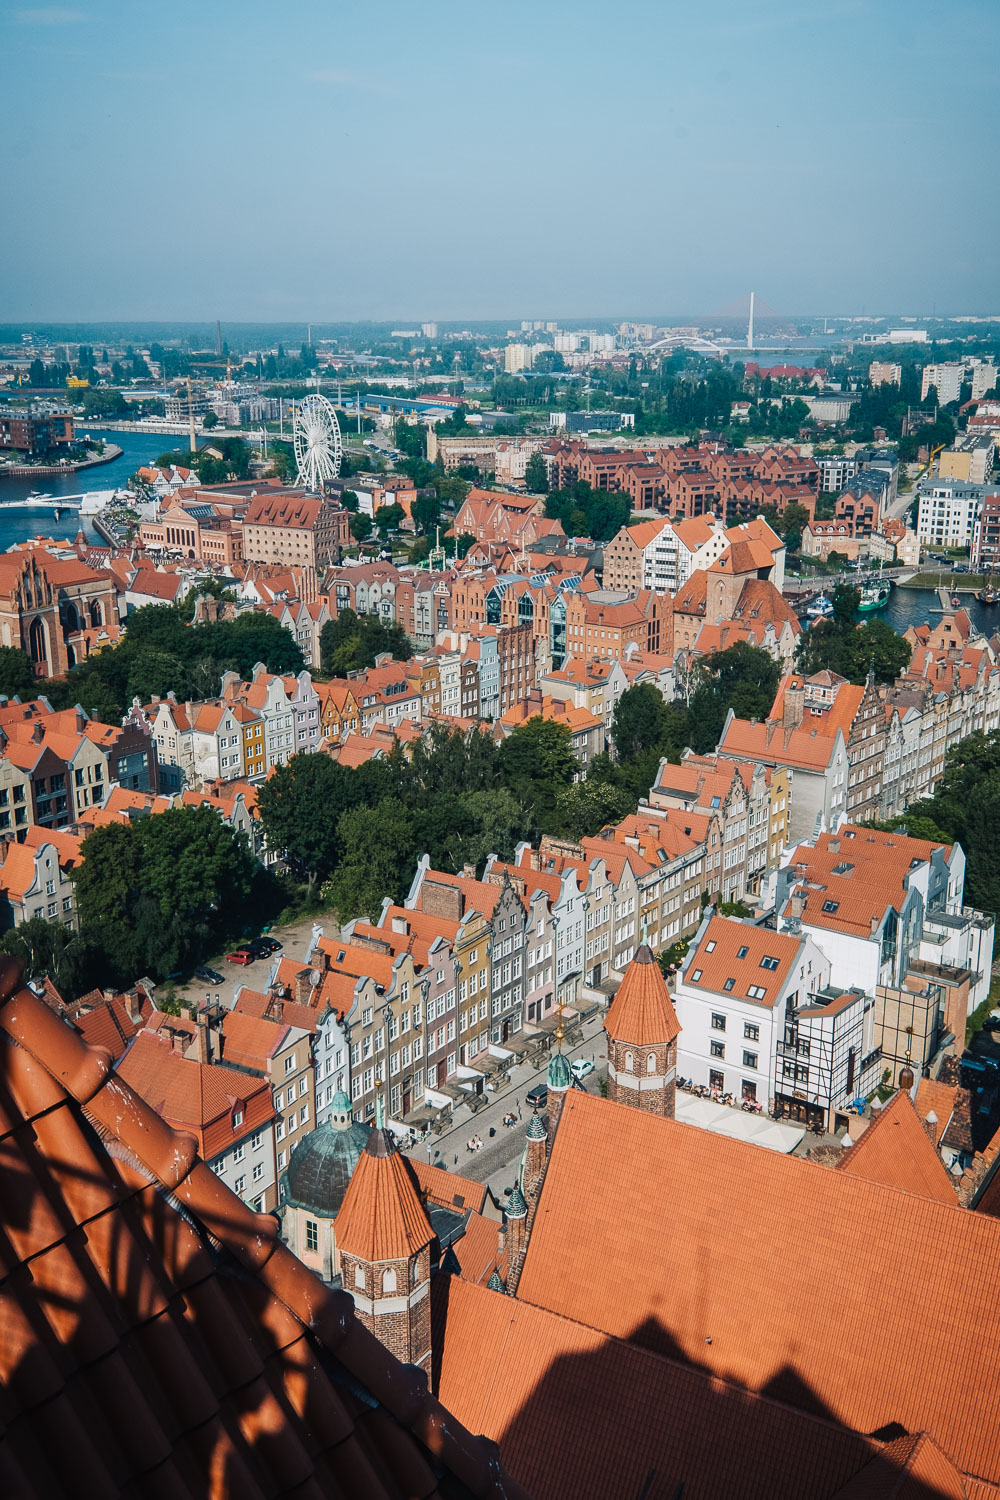 The view from the 78-metre-high tower of St. Mary's Basilica in Gdansk | Things to do in Gdansk, Poland: 48 Hours in the City #mondomulia